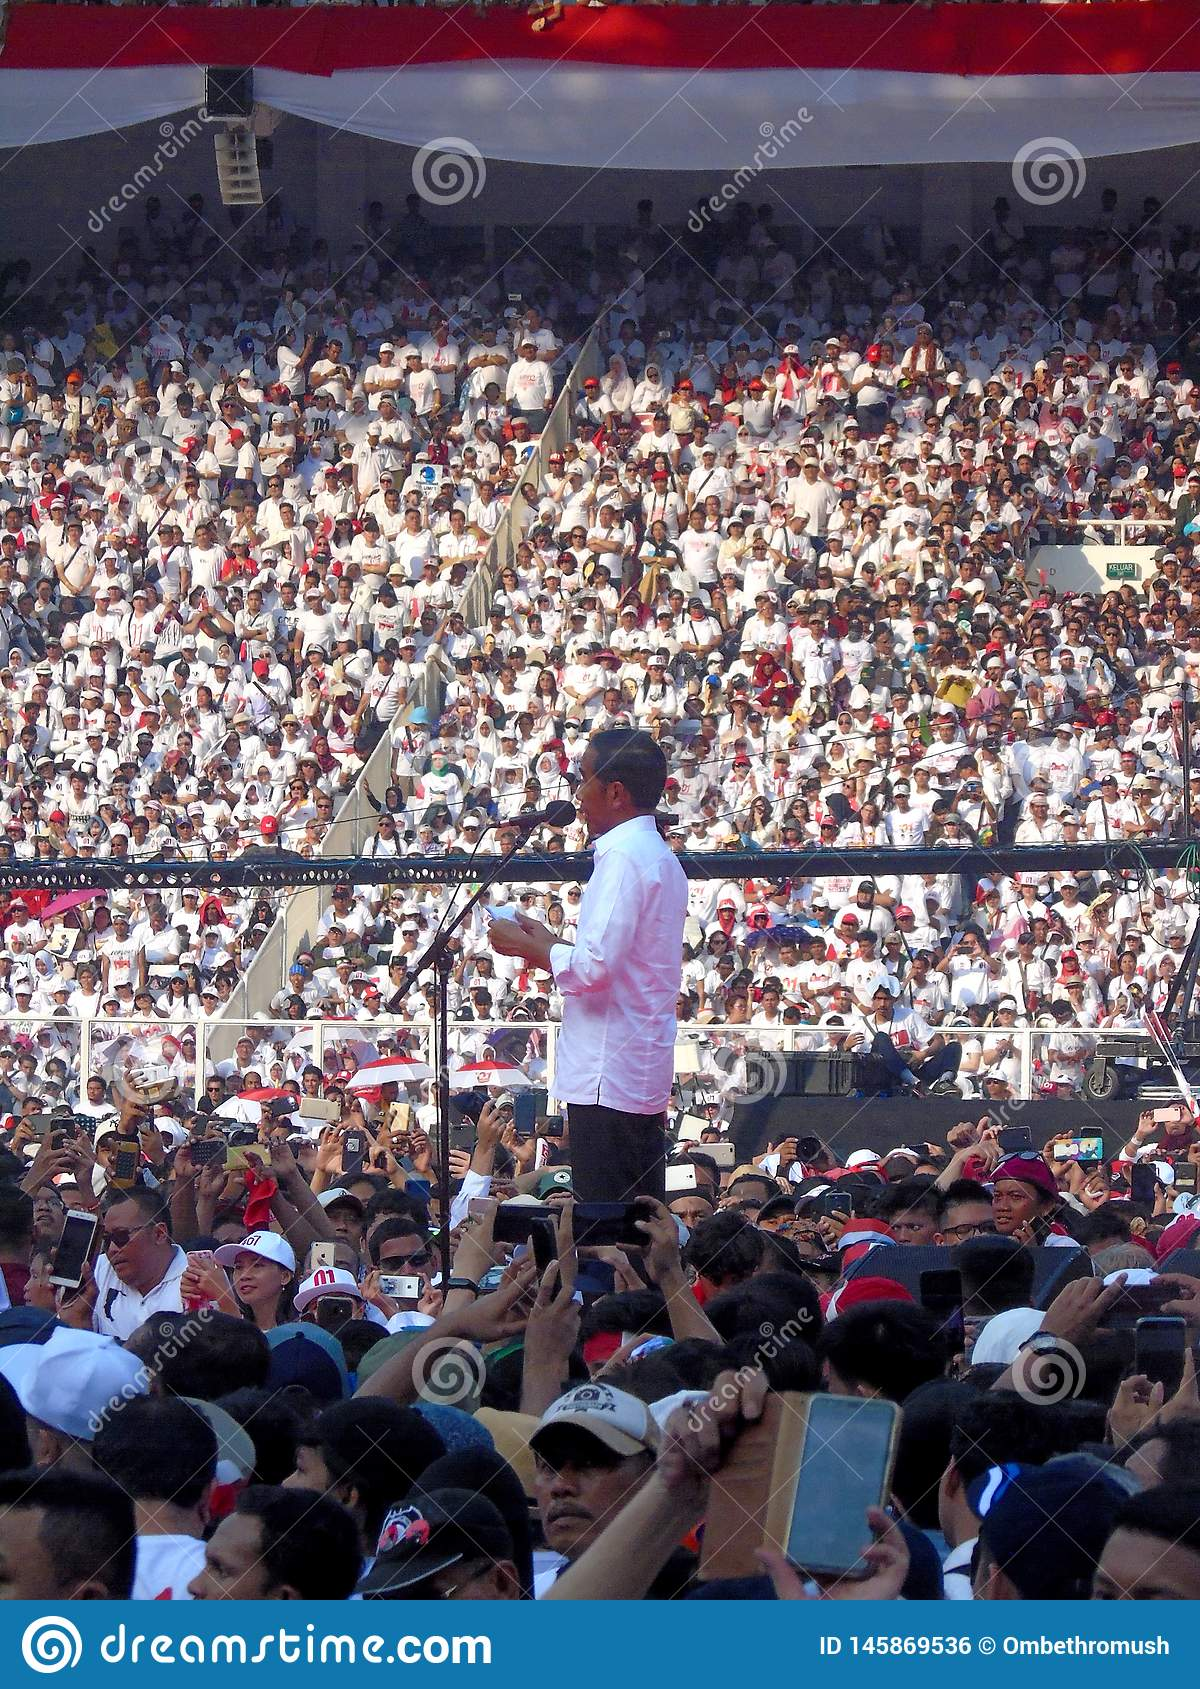 Candidates for President Joko Widodo campaign in front of hundreds of thousands of supporters at GBK Senayan.